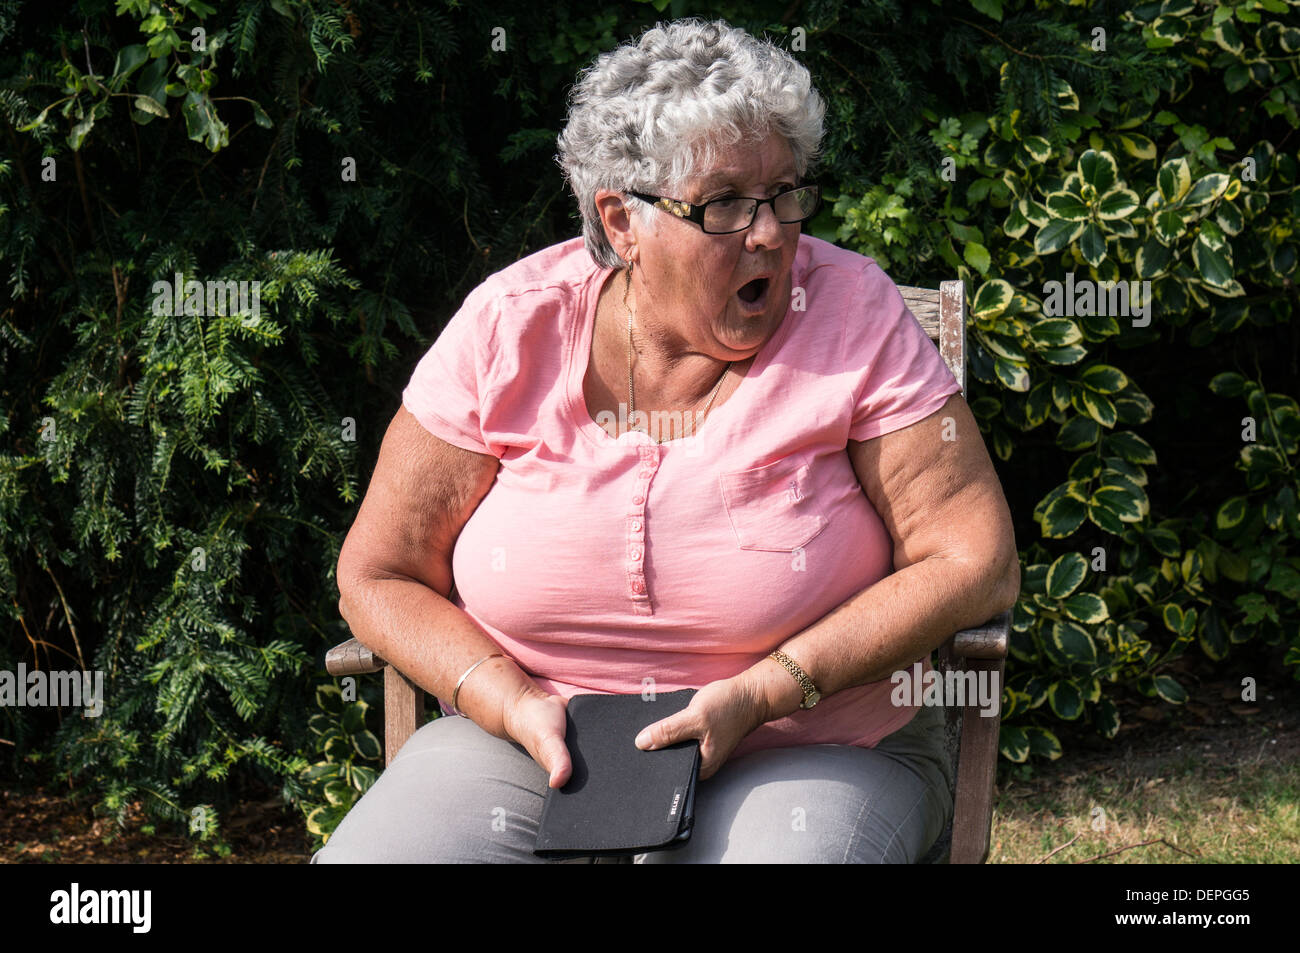 A shocked old / elderly / senior lady (aged 76) sitting in a chair in her garden. Stock Photo